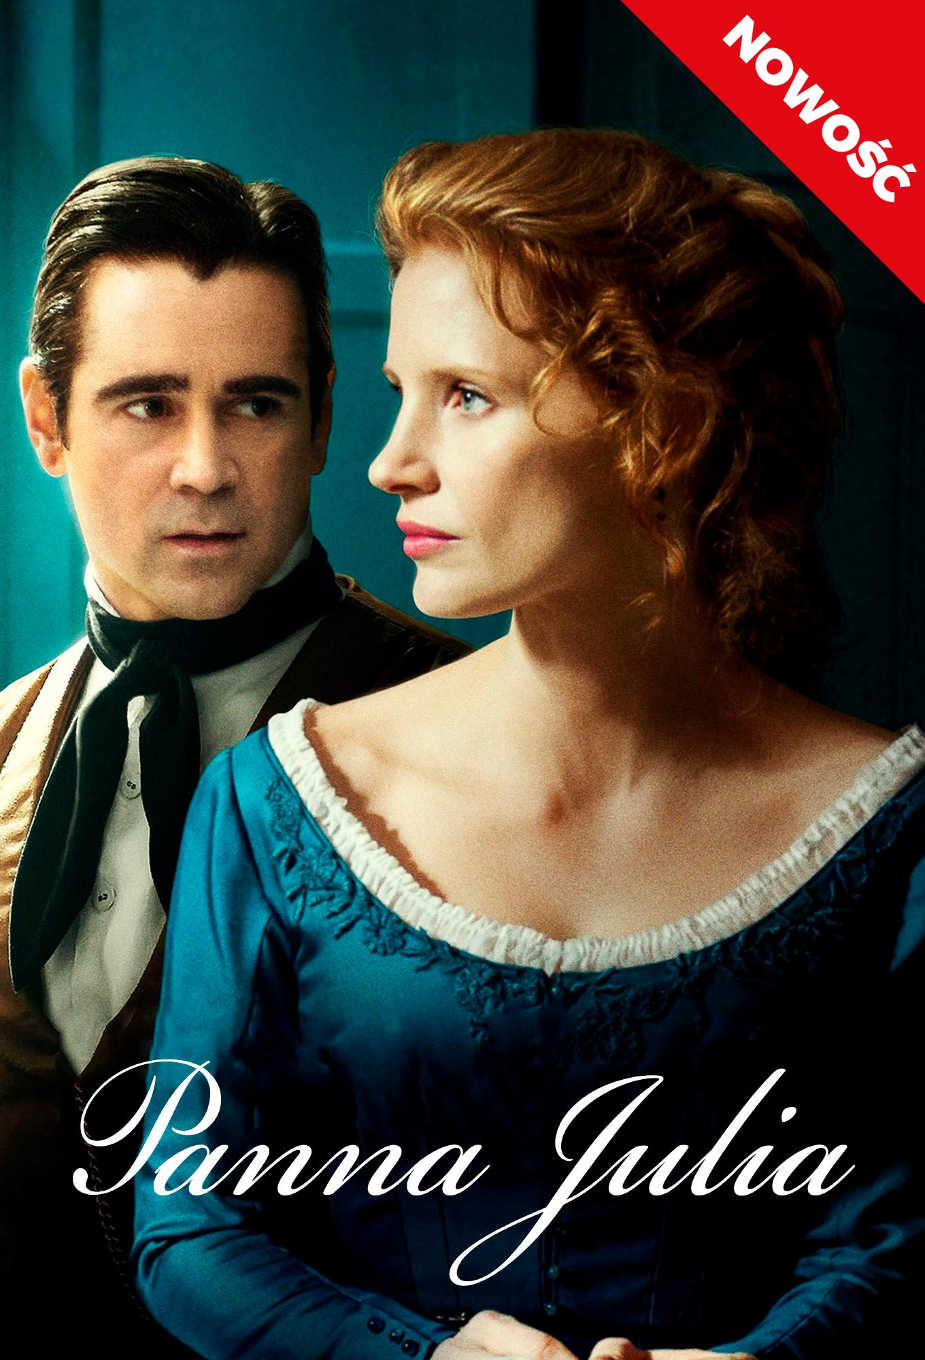 showmax-Miss Julie-bg-1